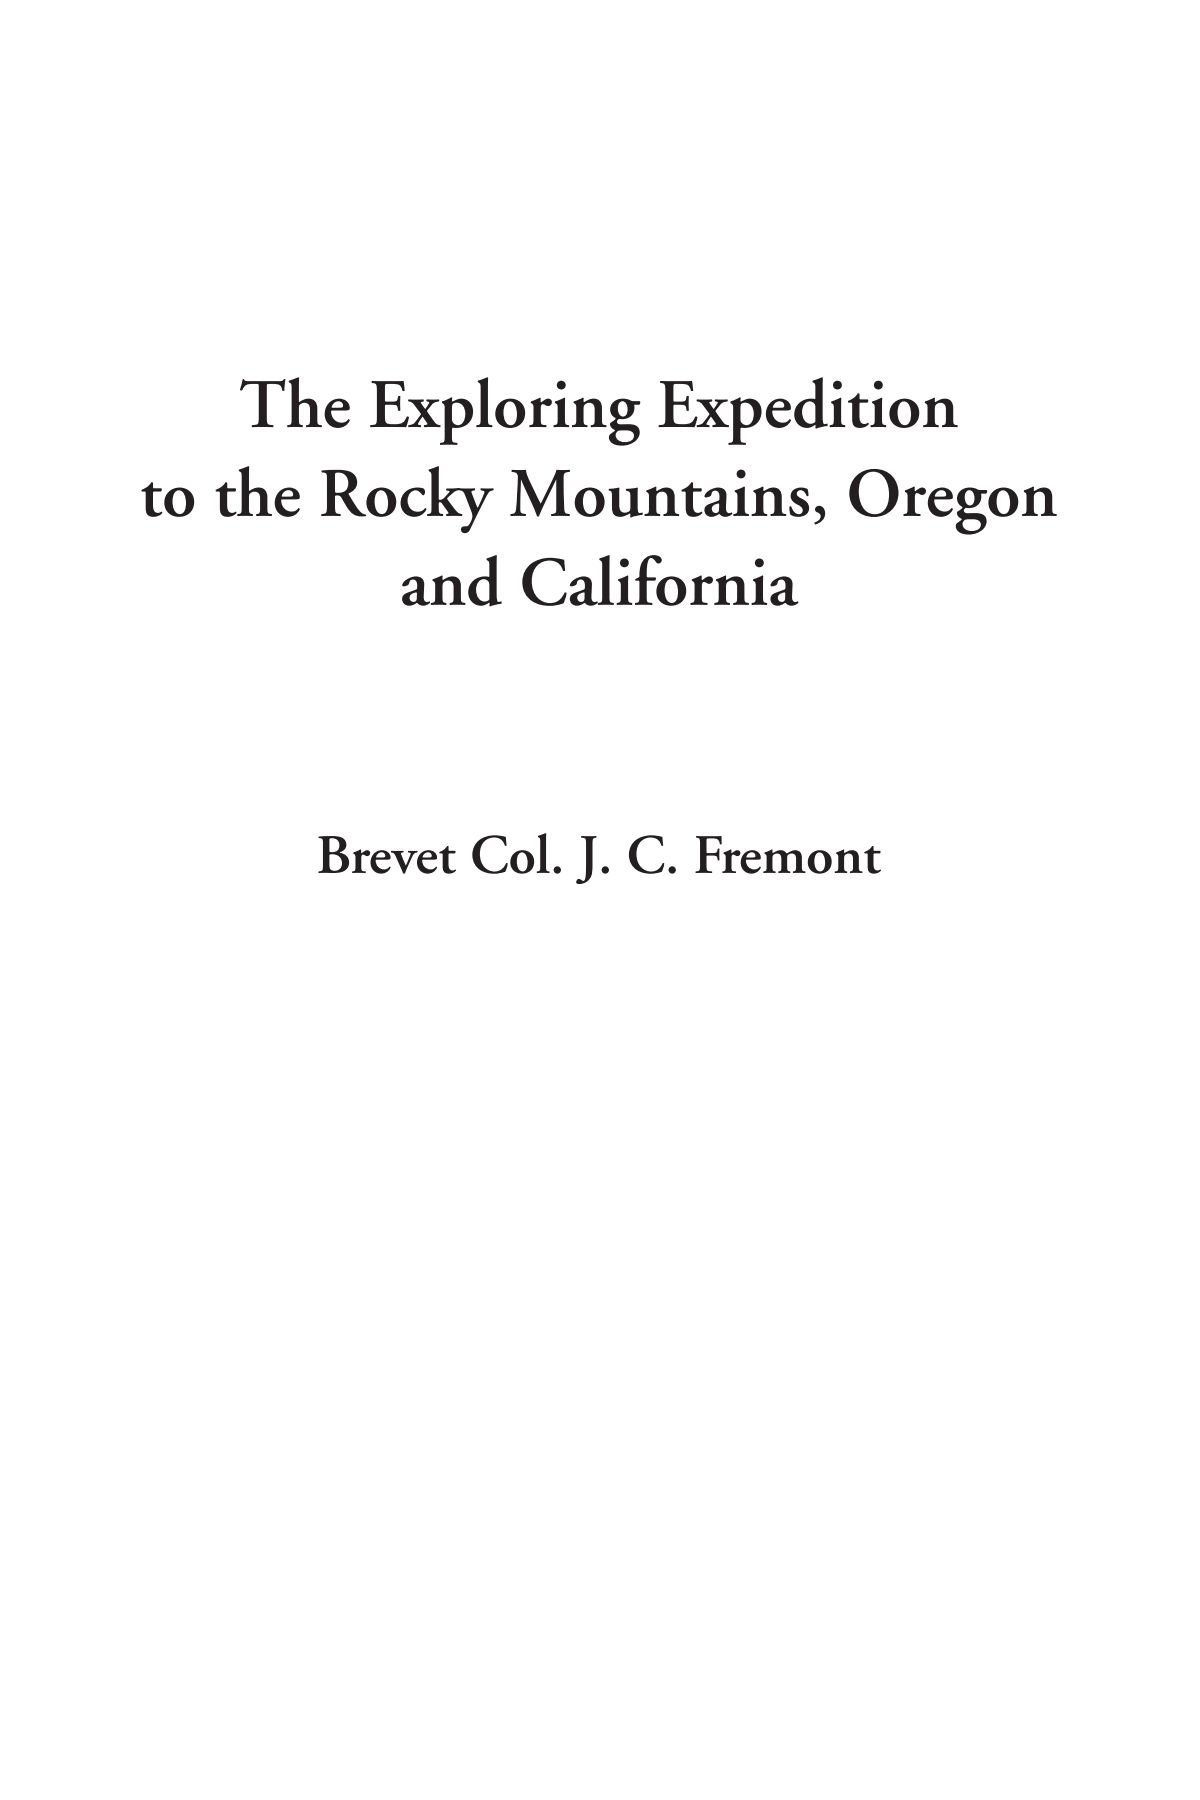 Download The Exploring Expedition to the Rocky Mountains, Oregon and California pdf epub